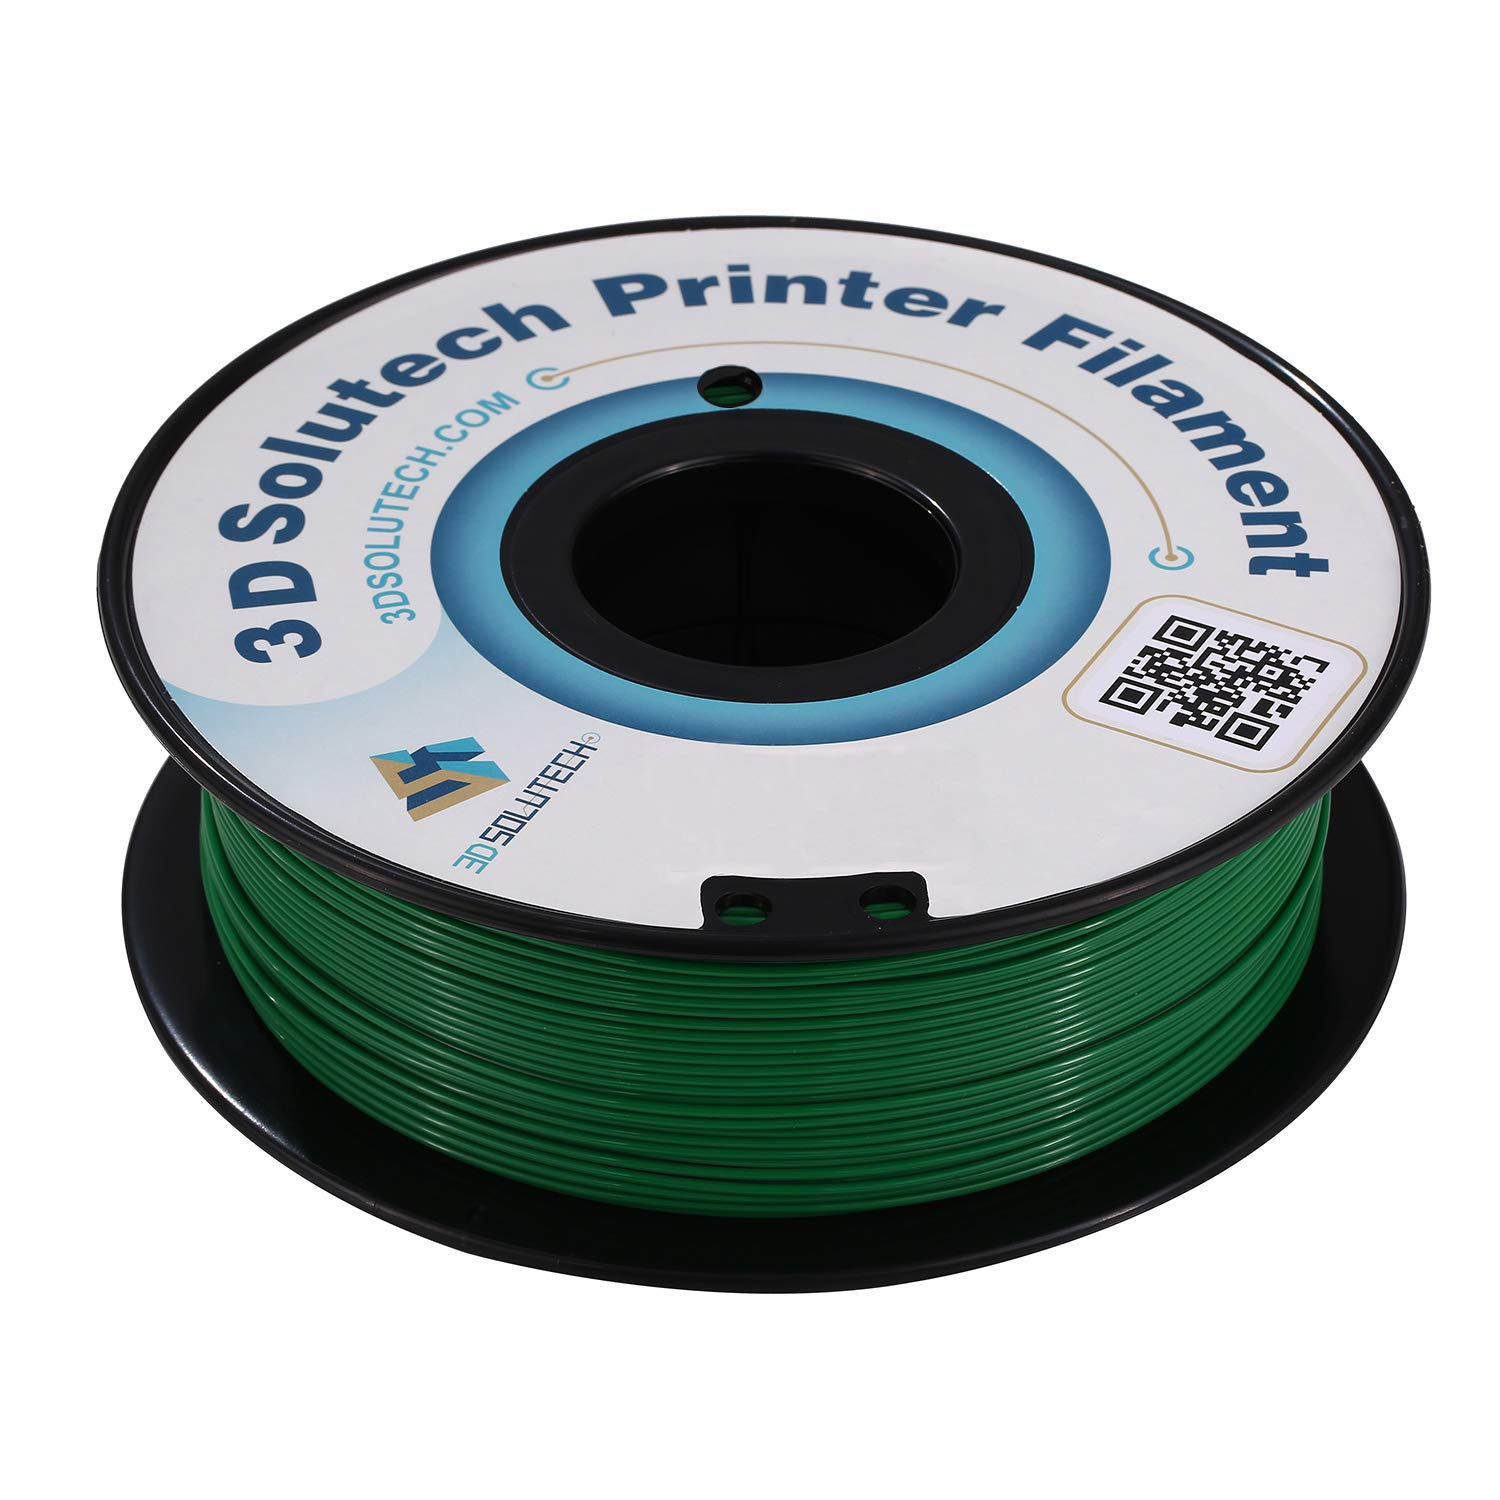 3D Solutech Real Green 3D Printer PLA Filament 1.75MM Filament, Dimensional Accuracy +/- 0.03 mm, 2.2 LBS (1.0KG)